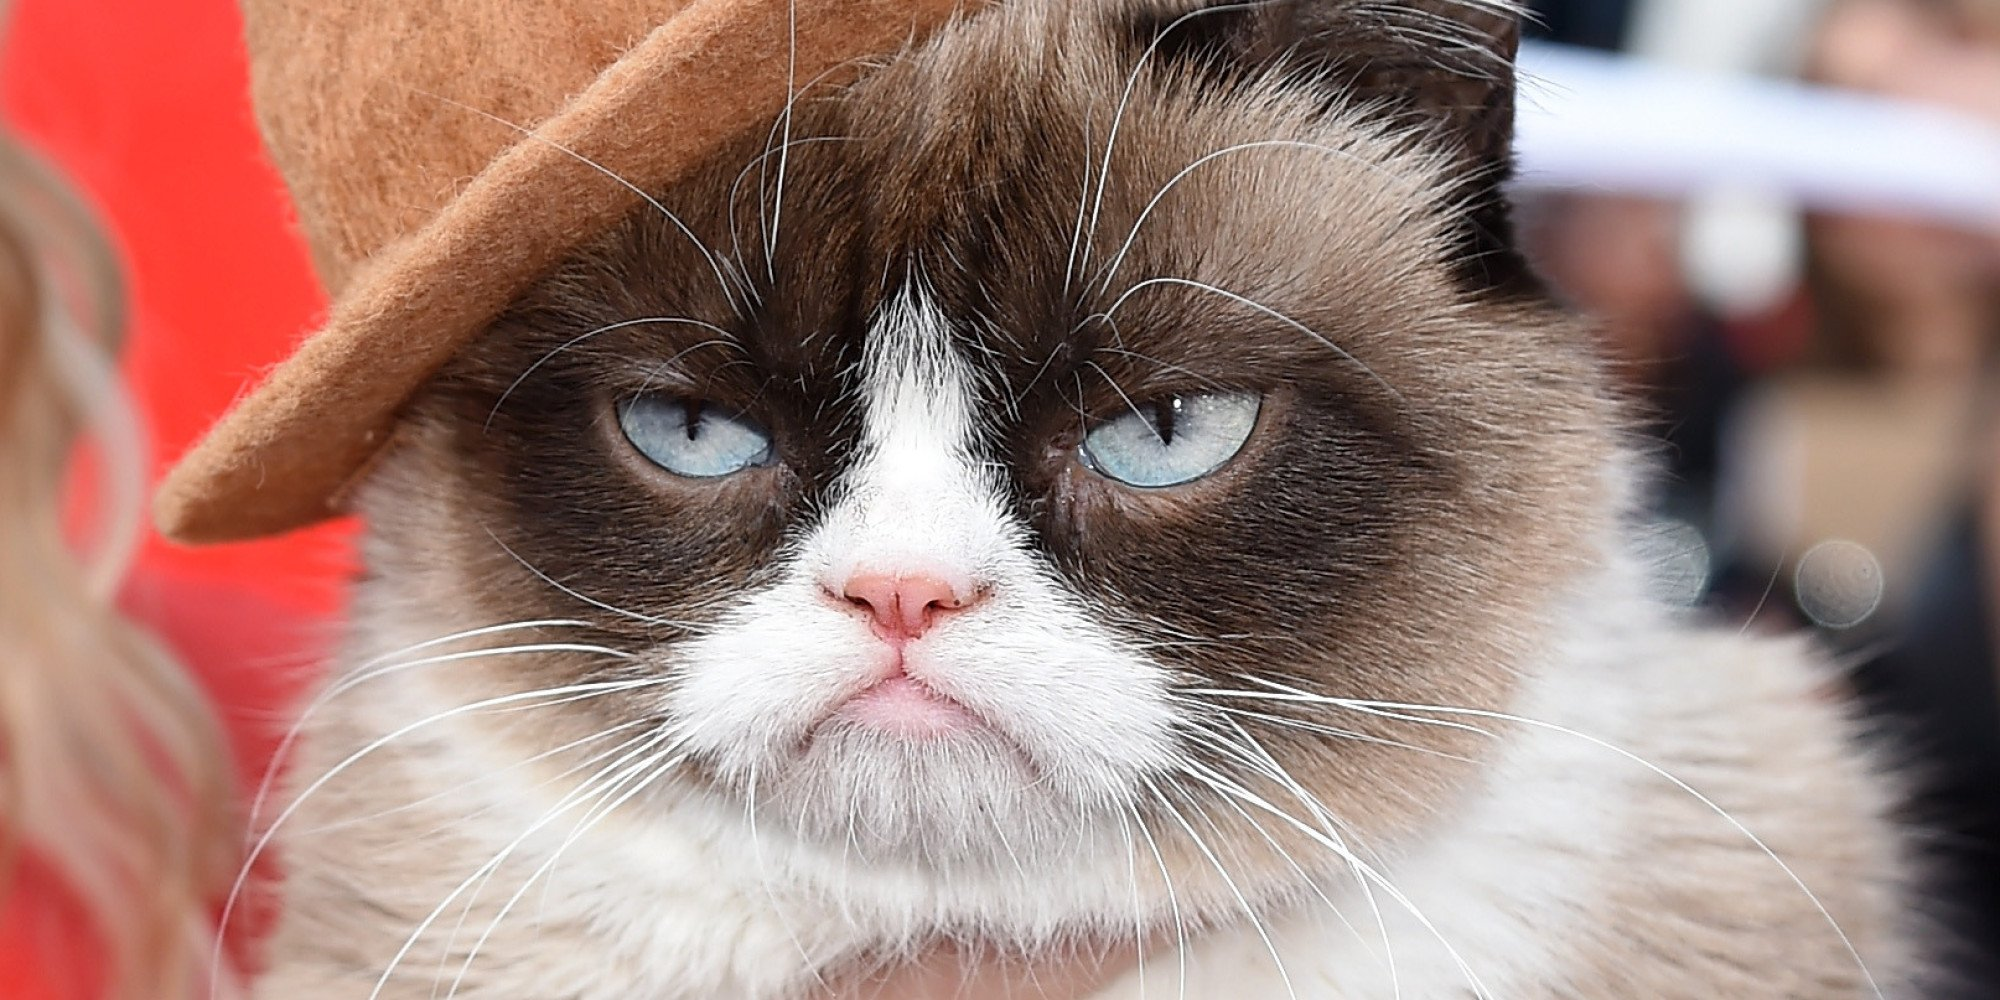 cat meme quote funny humor grumpy 51 wallpaper background 2000x1000